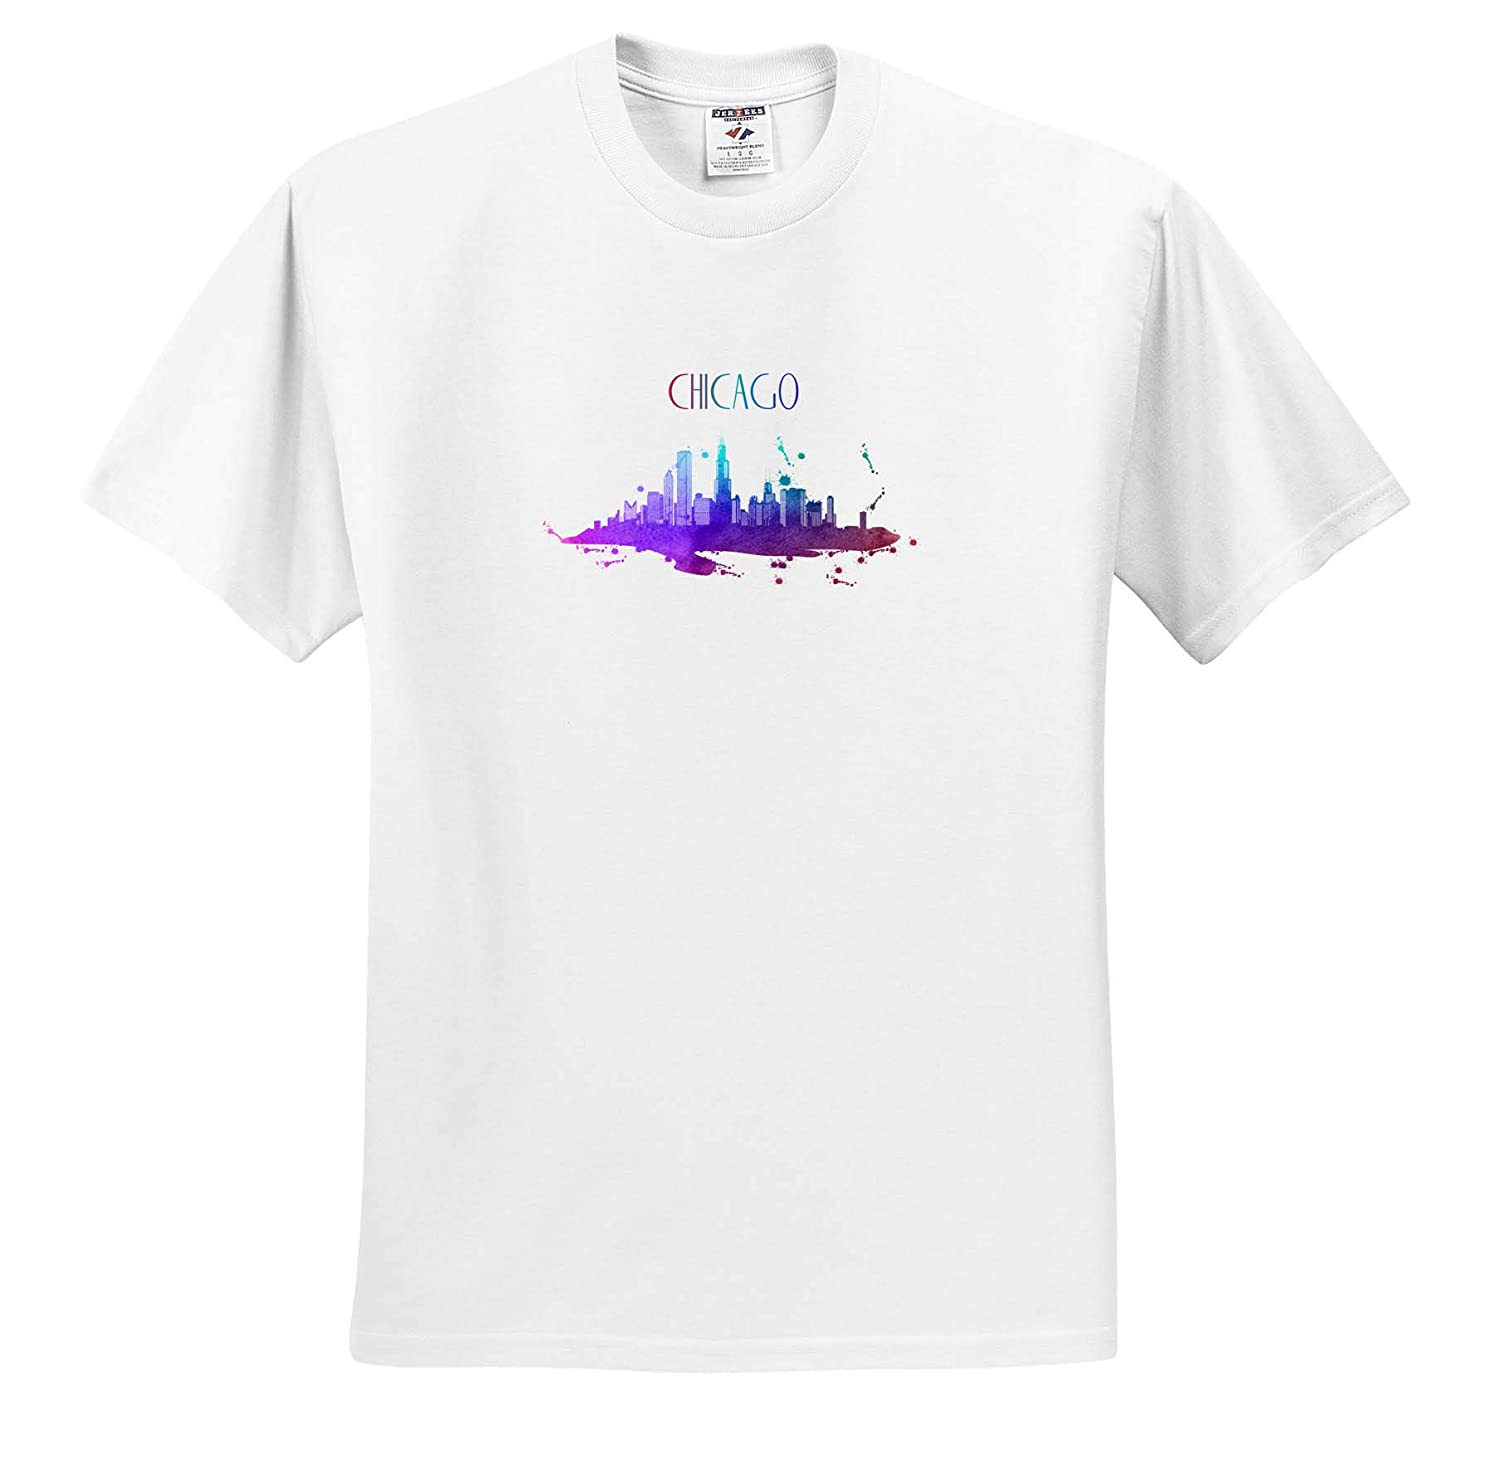 Chicago Skyline with Watercolor Art of United States Adult T-Shirt XL ts/_311017 3dRose Sven Herkenrath City